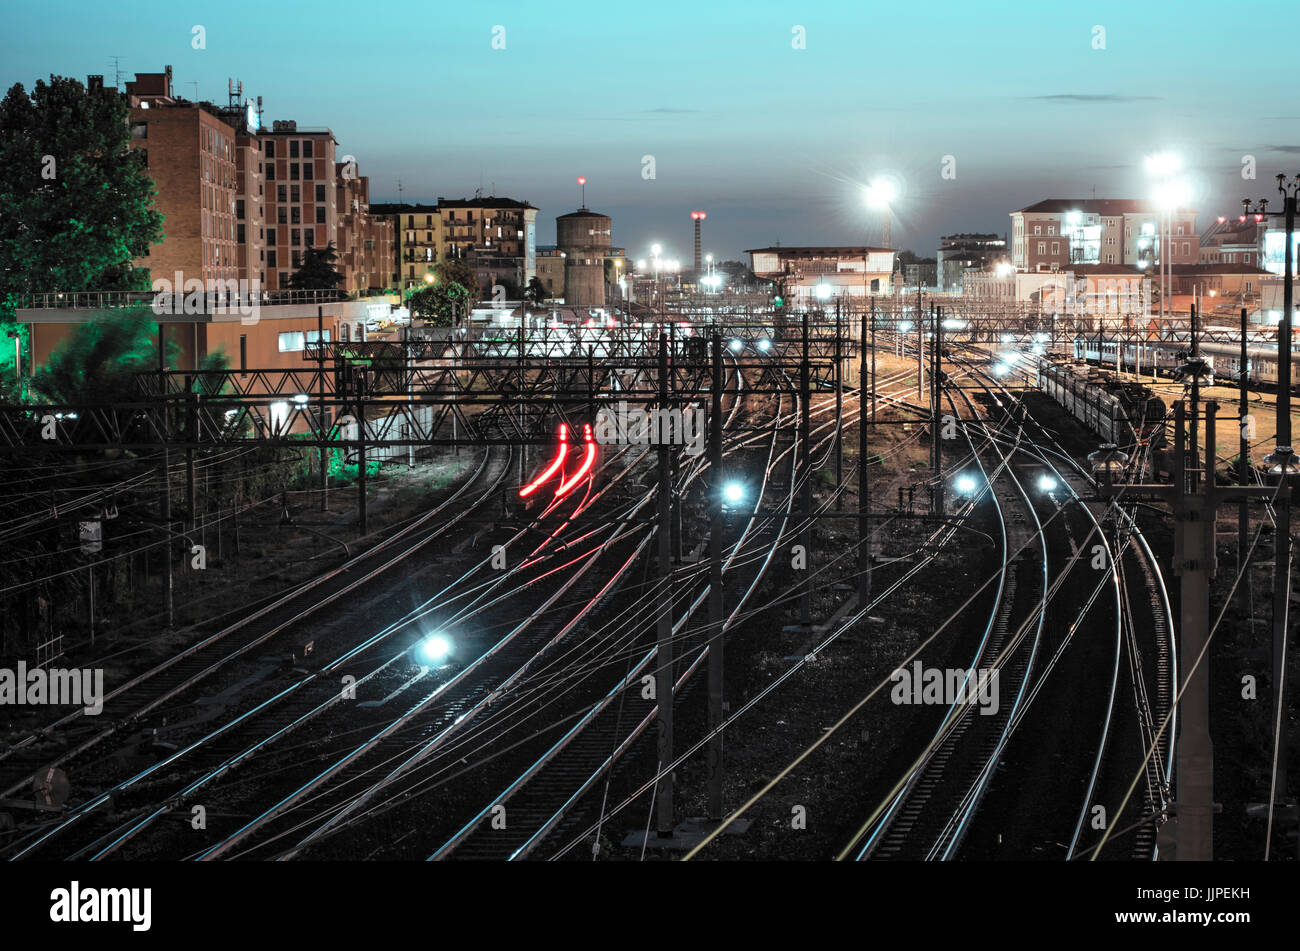 A picture of the train railways near the central station of Bologna, Italy - Stock Image